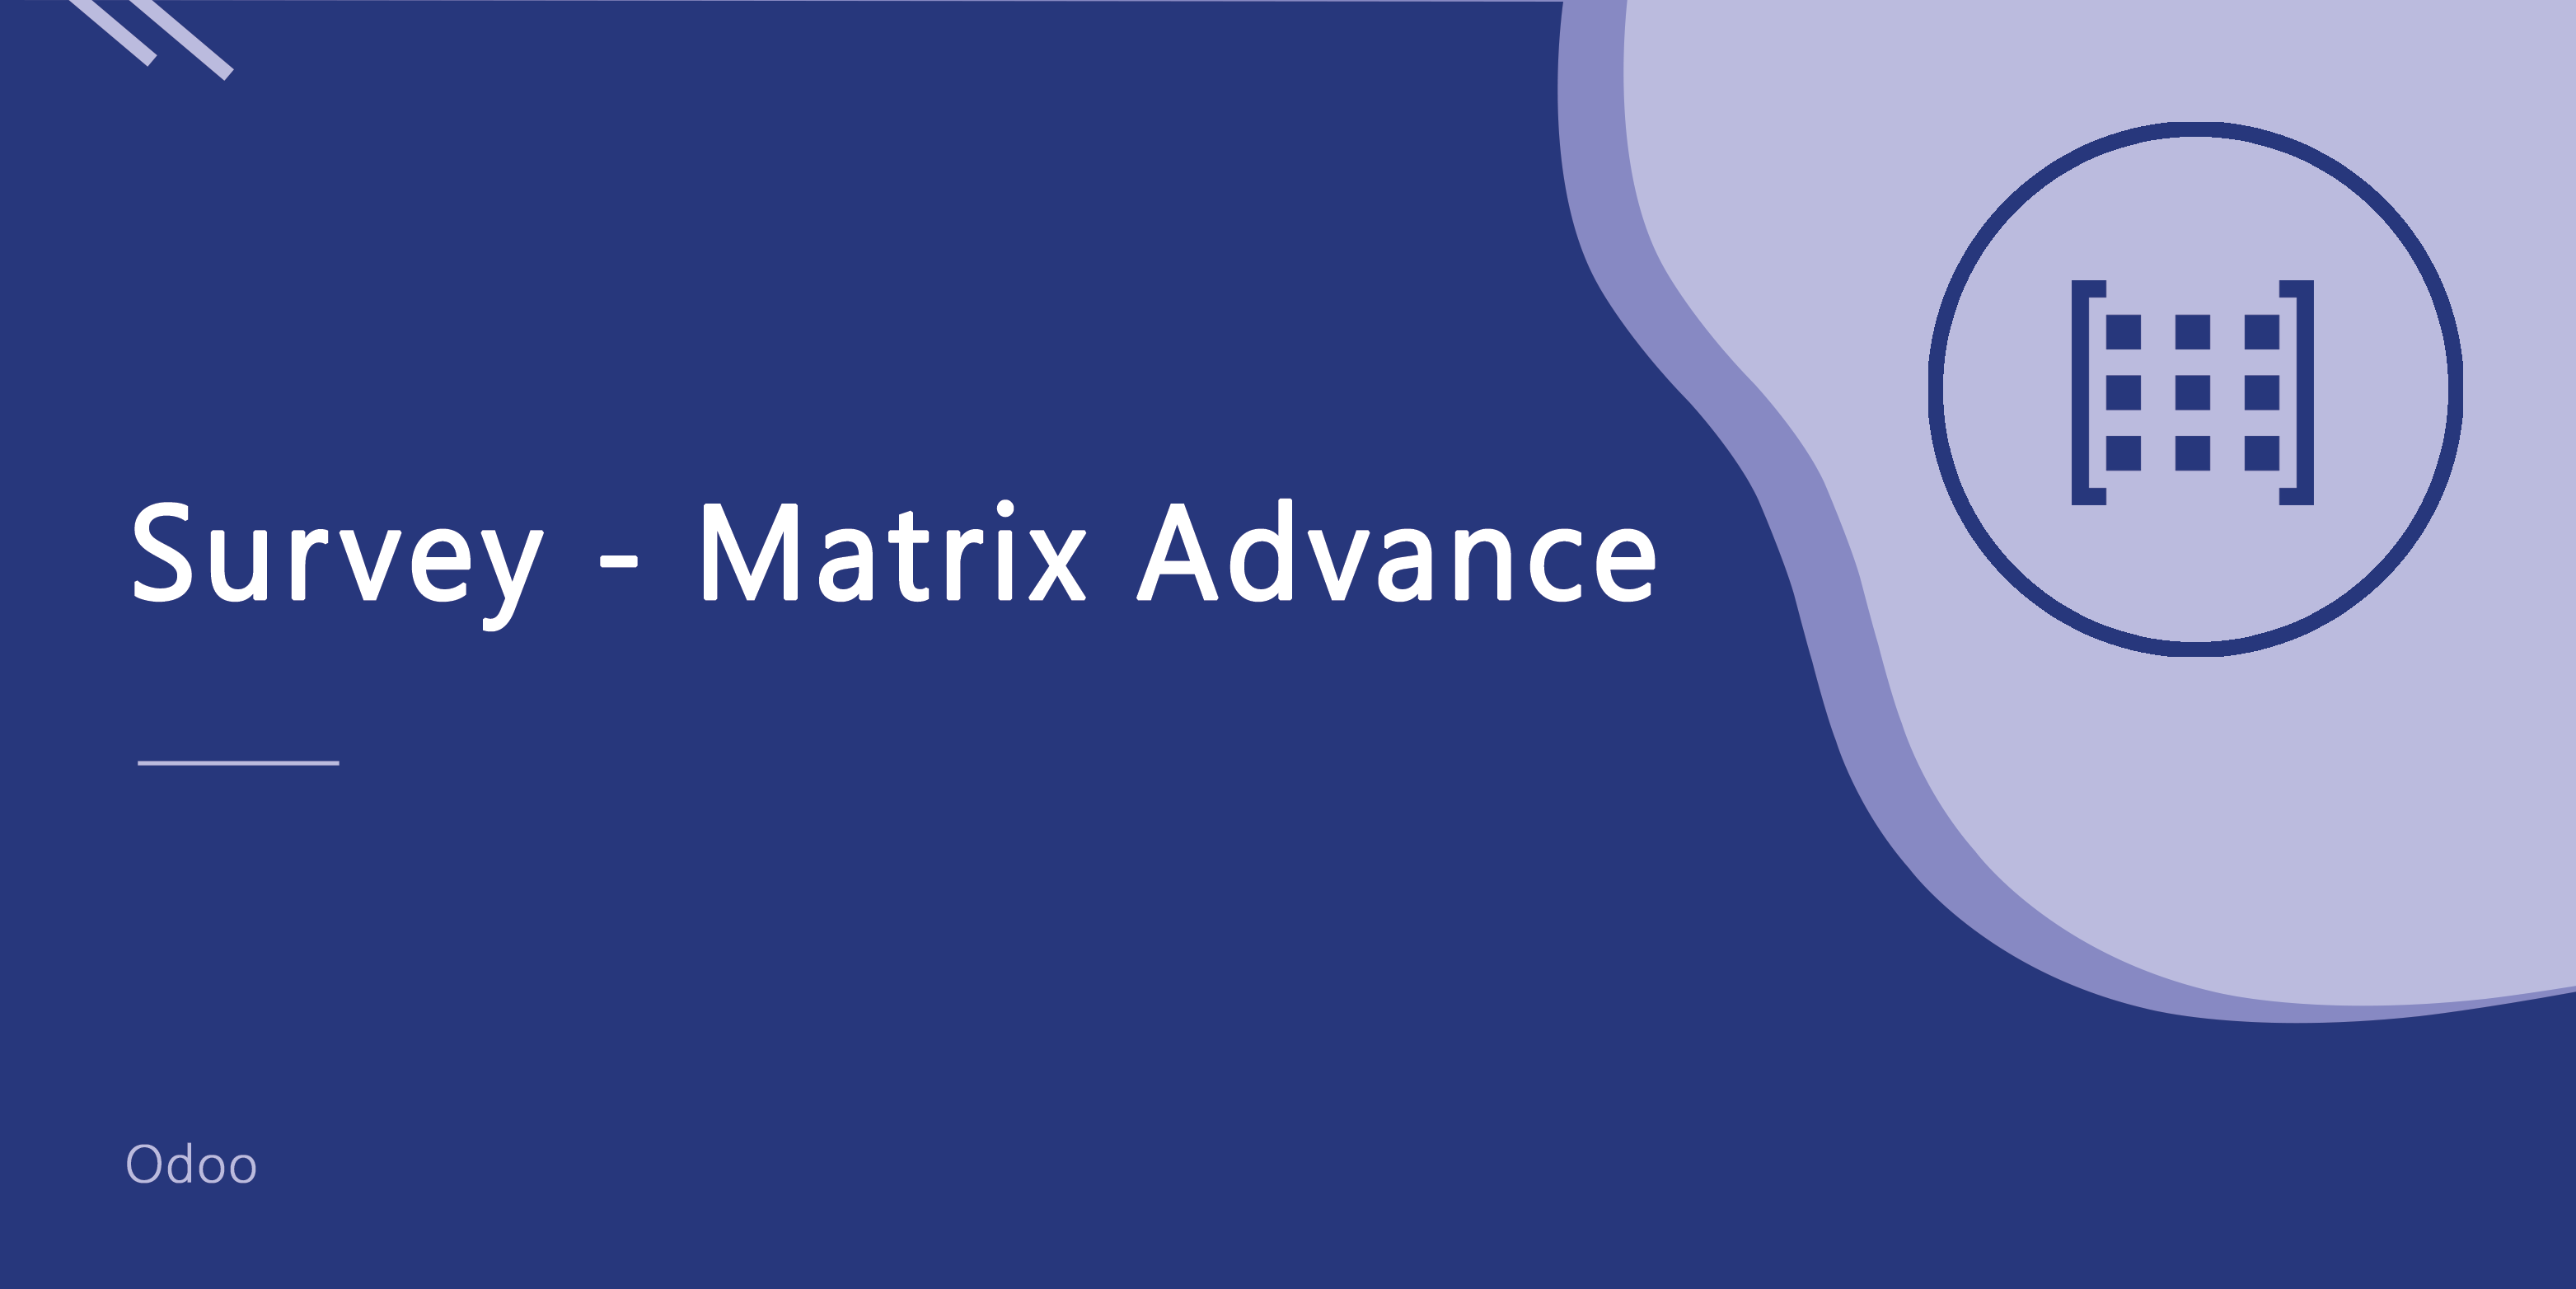 Survey - Matrix Advance